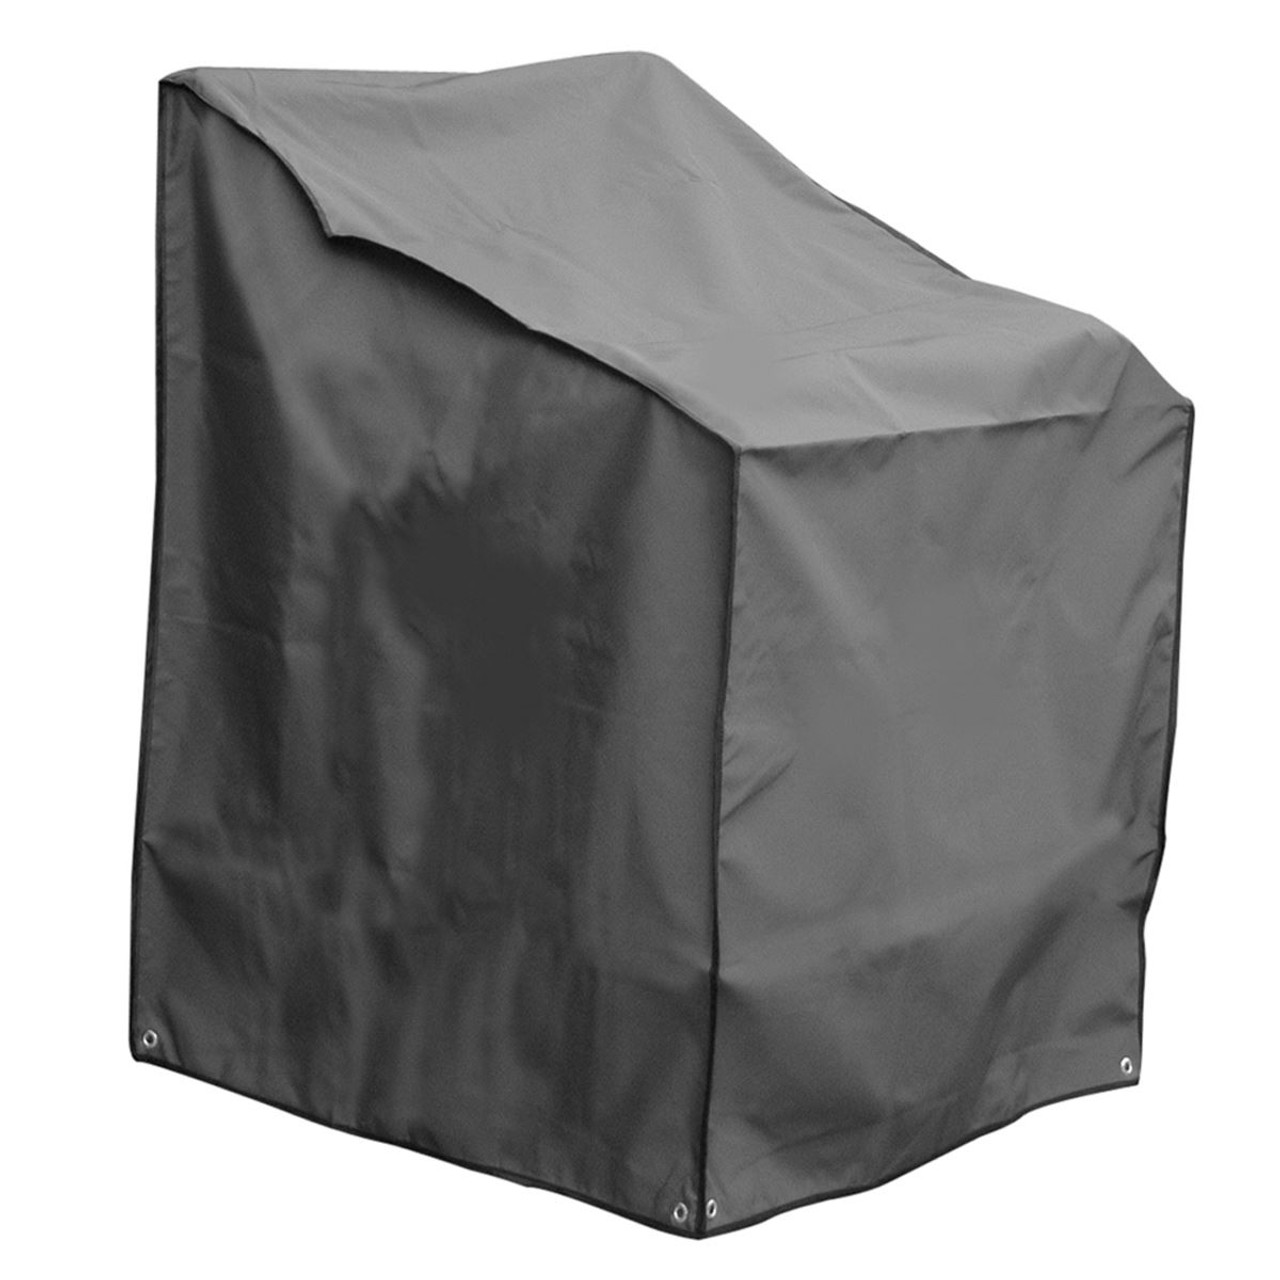 Bosmere Protector 7000 Wooden Armchair Cover